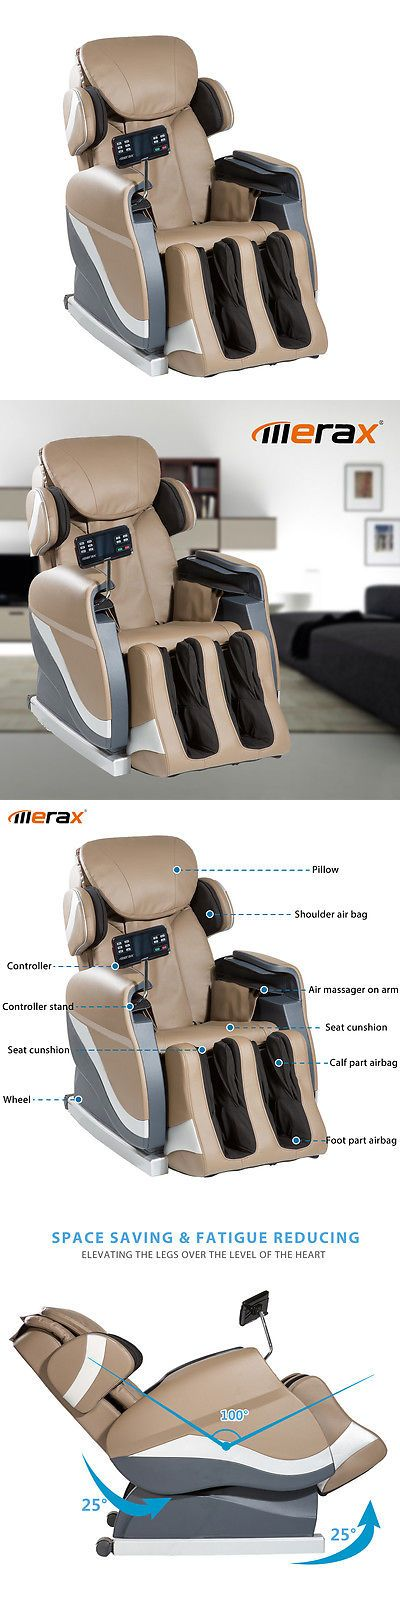 Electric Massage Chairs: Merax Electric Full Body Shiatsu Massage Chair Foot Roller Recliner W/Heat BUY IT NOW ONLY: $569.75